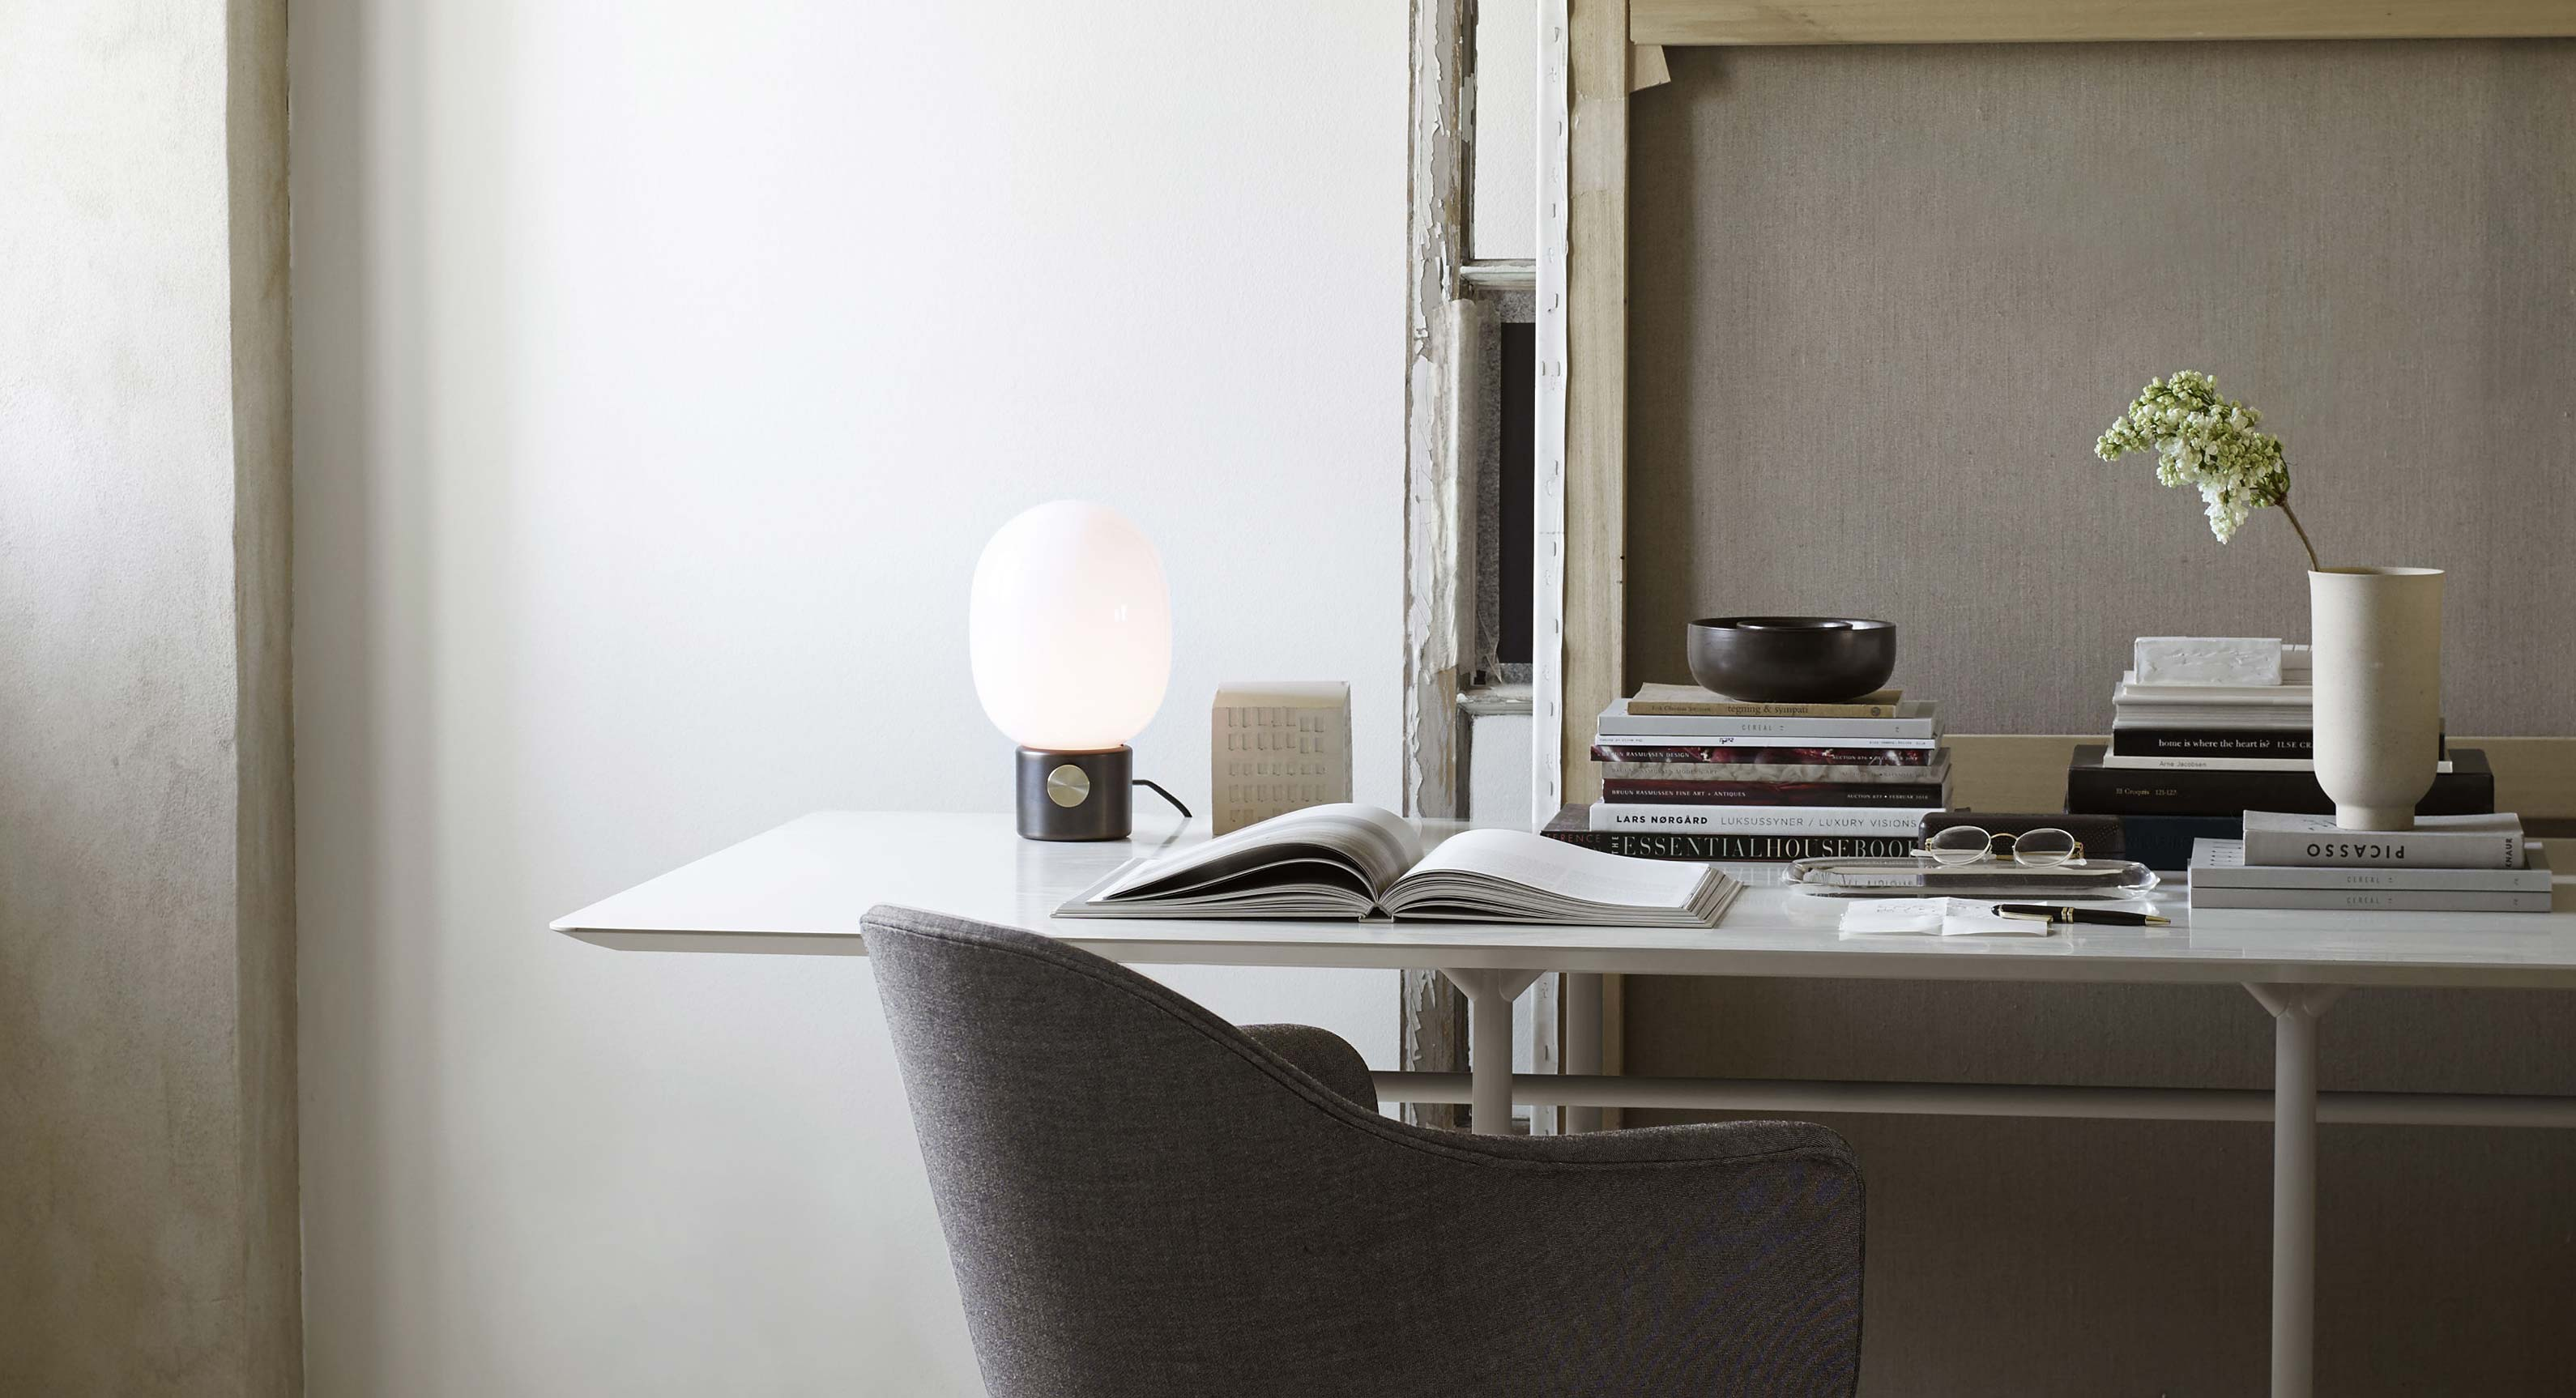 4 Desk Lamps To Lighten Up Your Office Mood